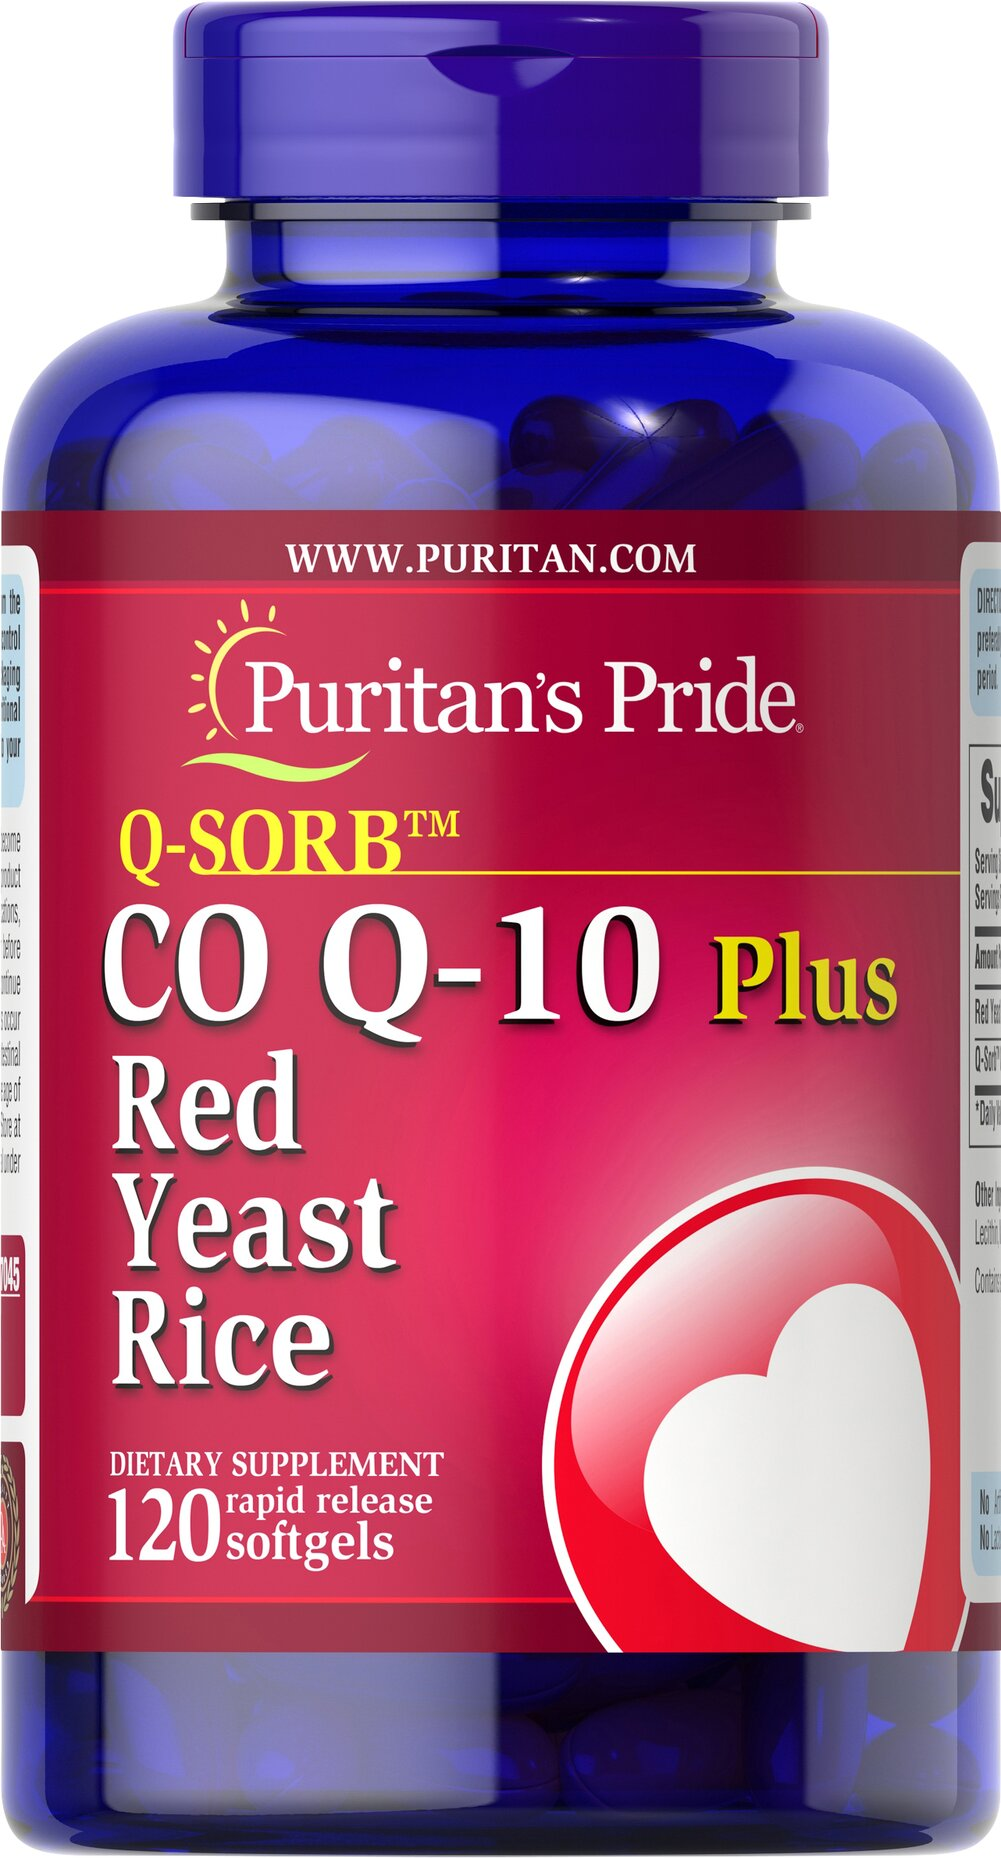 Q-SORB™ Co Q-10 Plus Red Yeast Rice  120 Rapid Release Softgels 120 mg/1200 mg $39.99